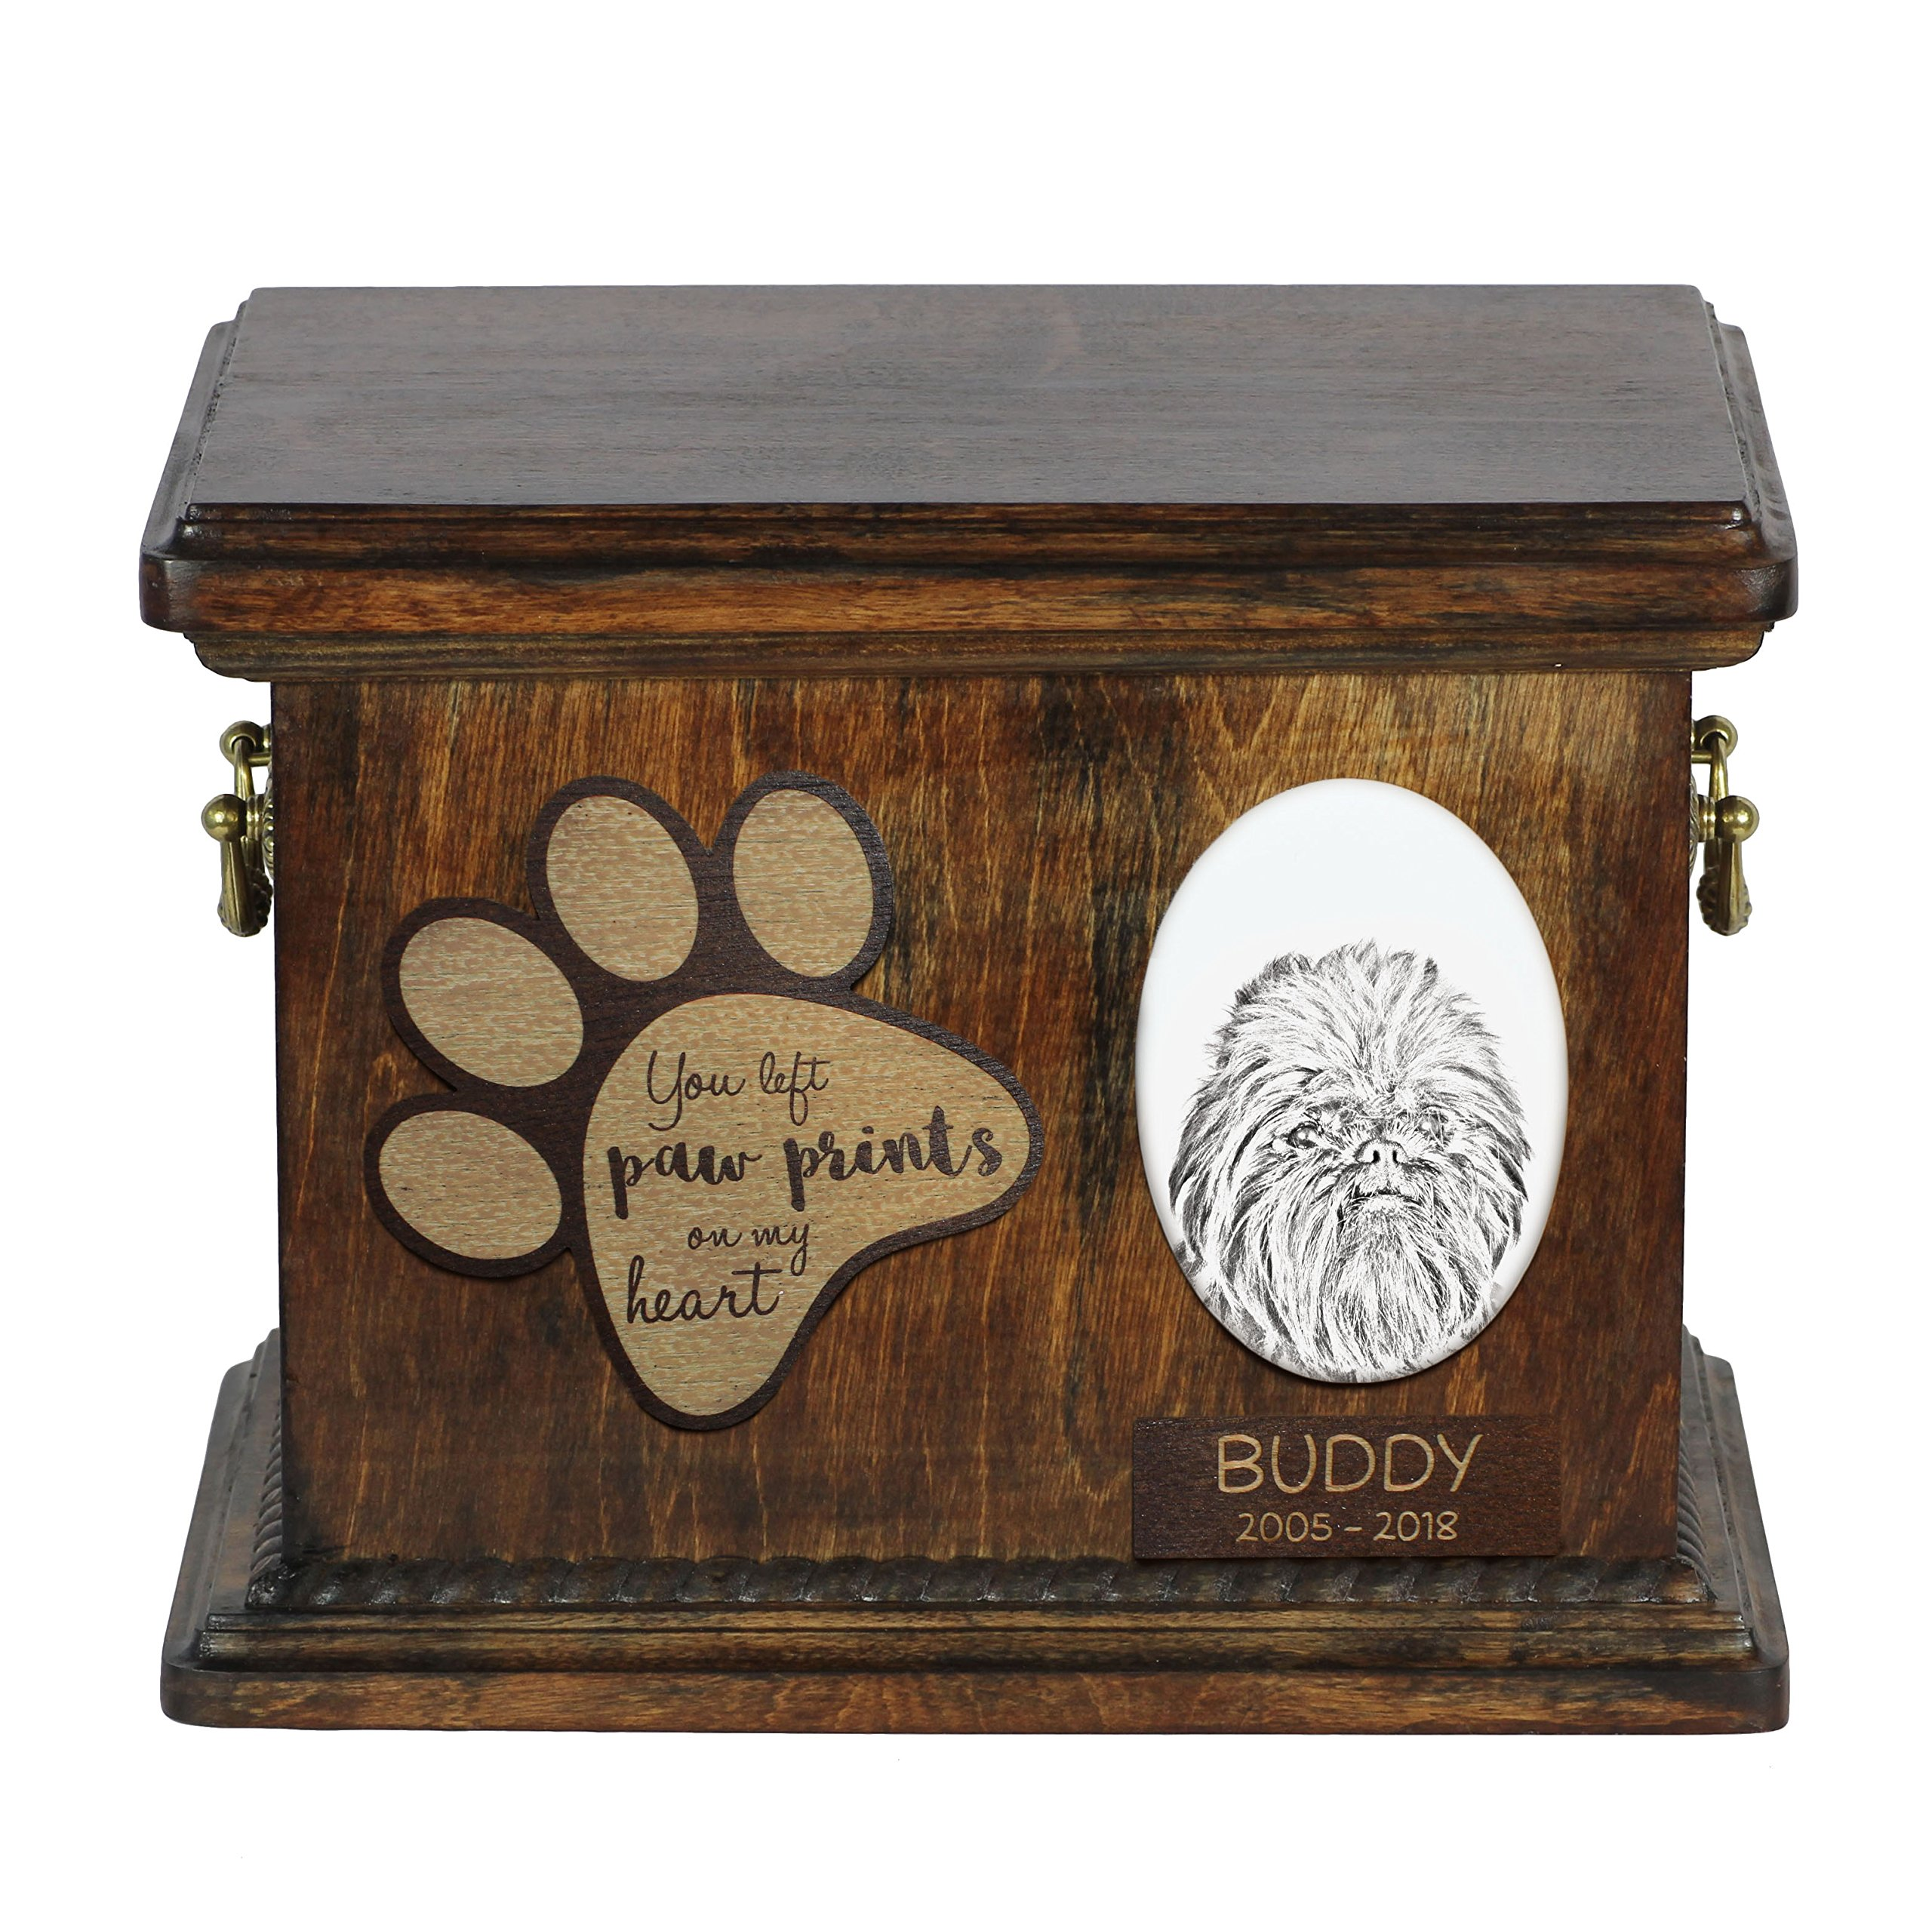 ArtDog Ltd. Affenpinscher, urn for dog's ashes with ceramic plate and description